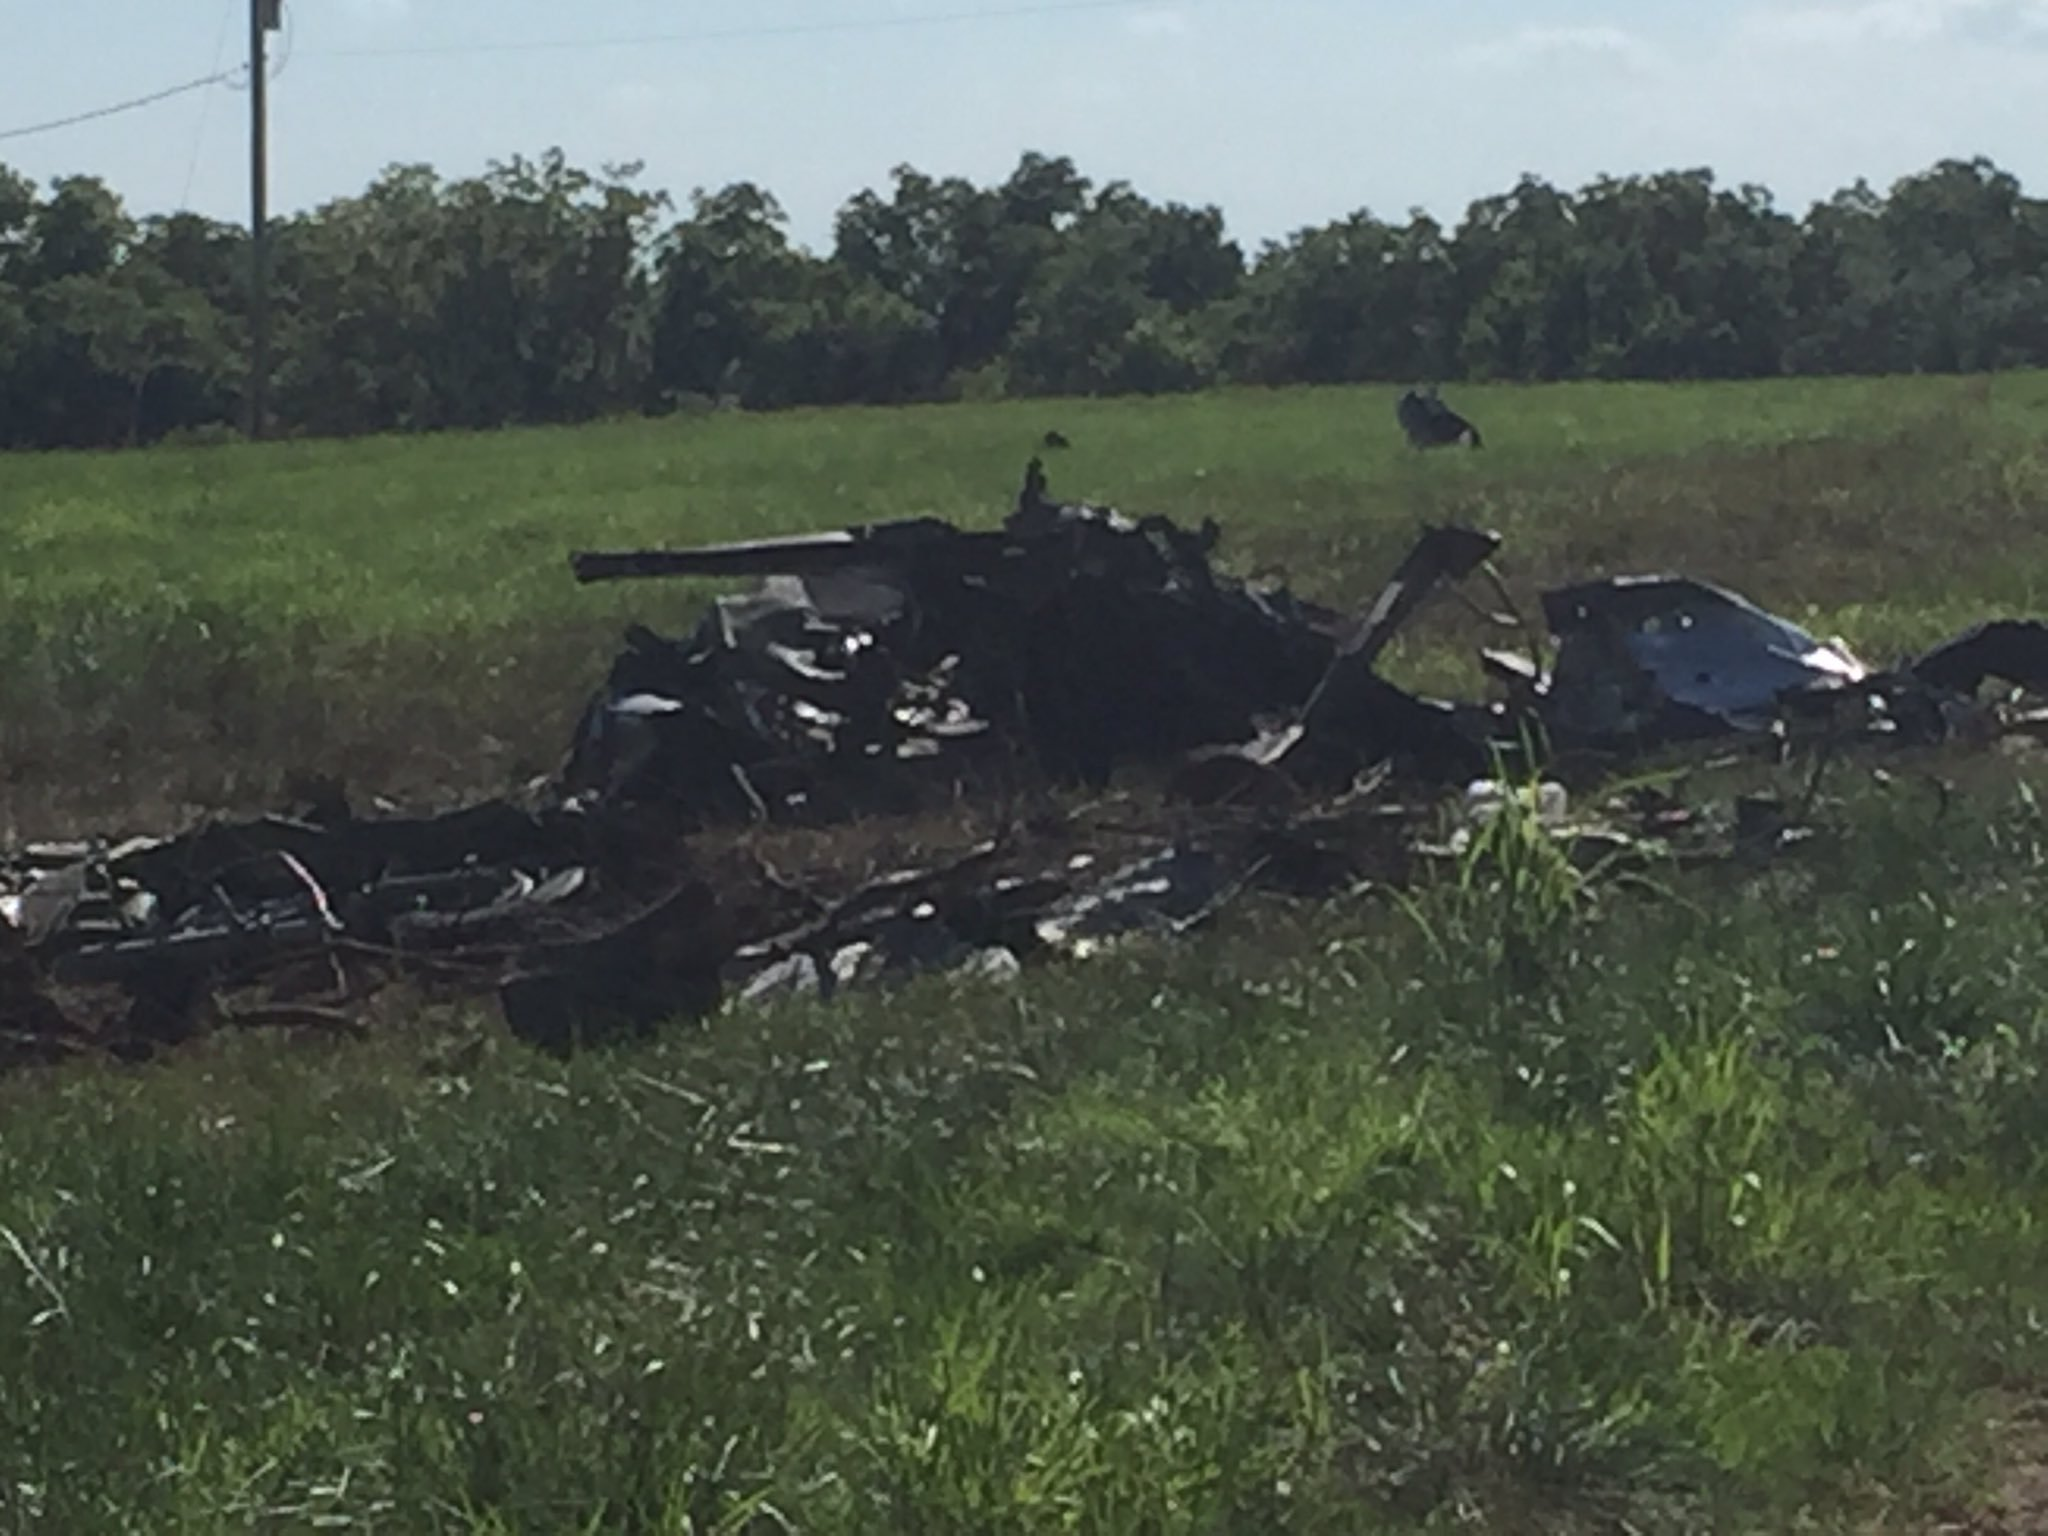 The plane crashed at 238 Ness Road just before 10:30 a.m